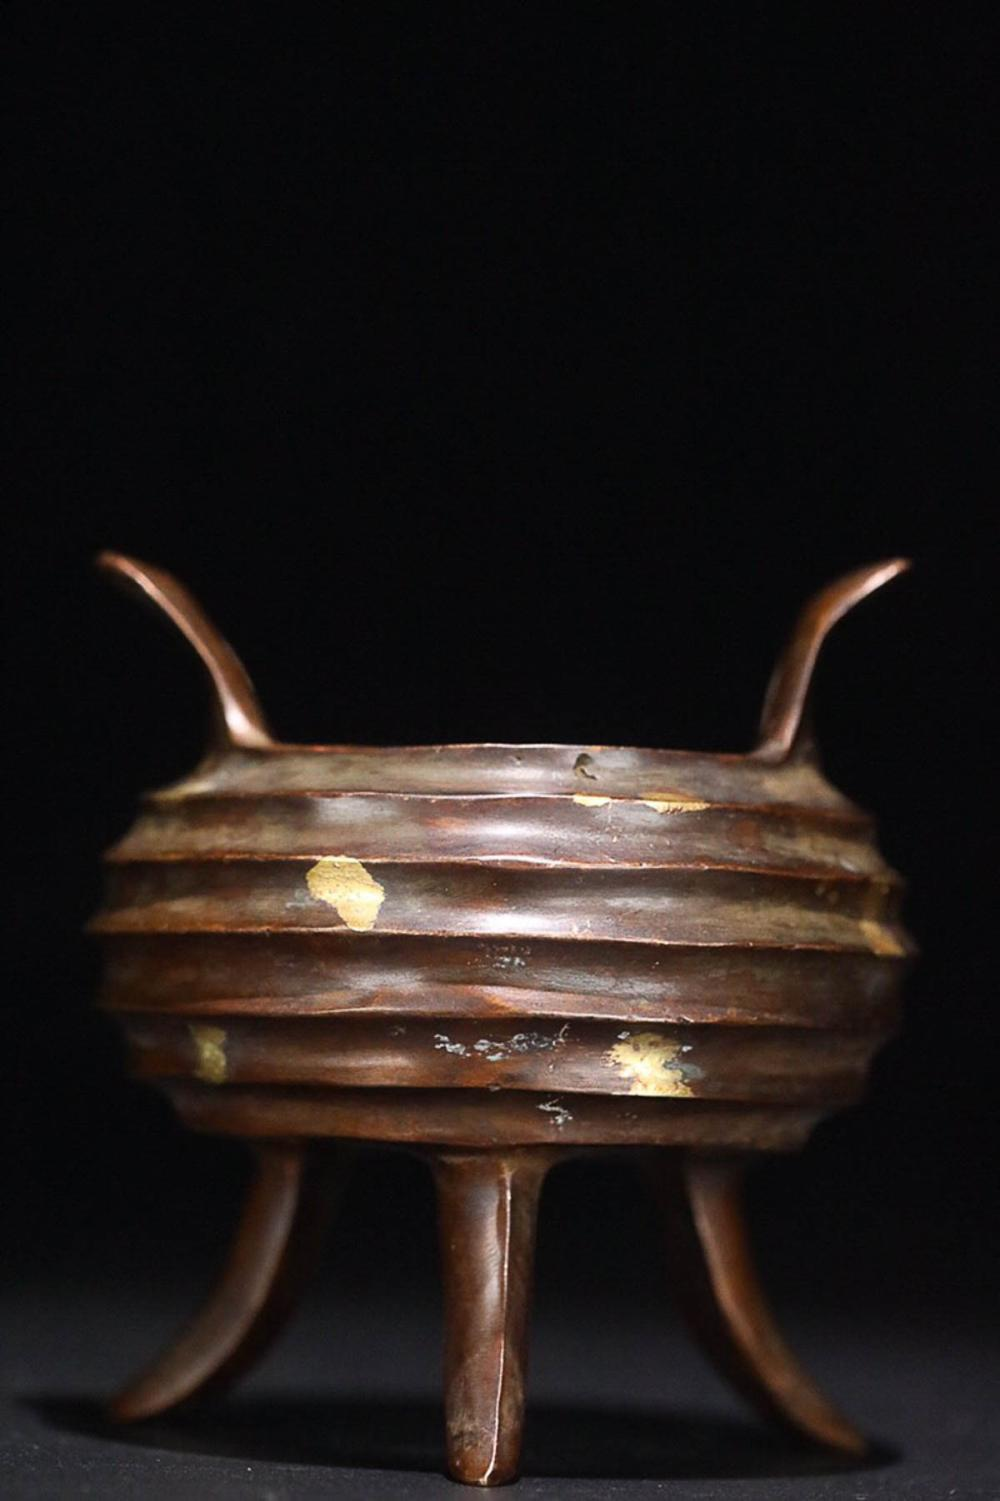 17-19TH CENTURY, A BRONZE TRIPLE FOOT DOUBLE EAR FURNACE, QING DYNASTY